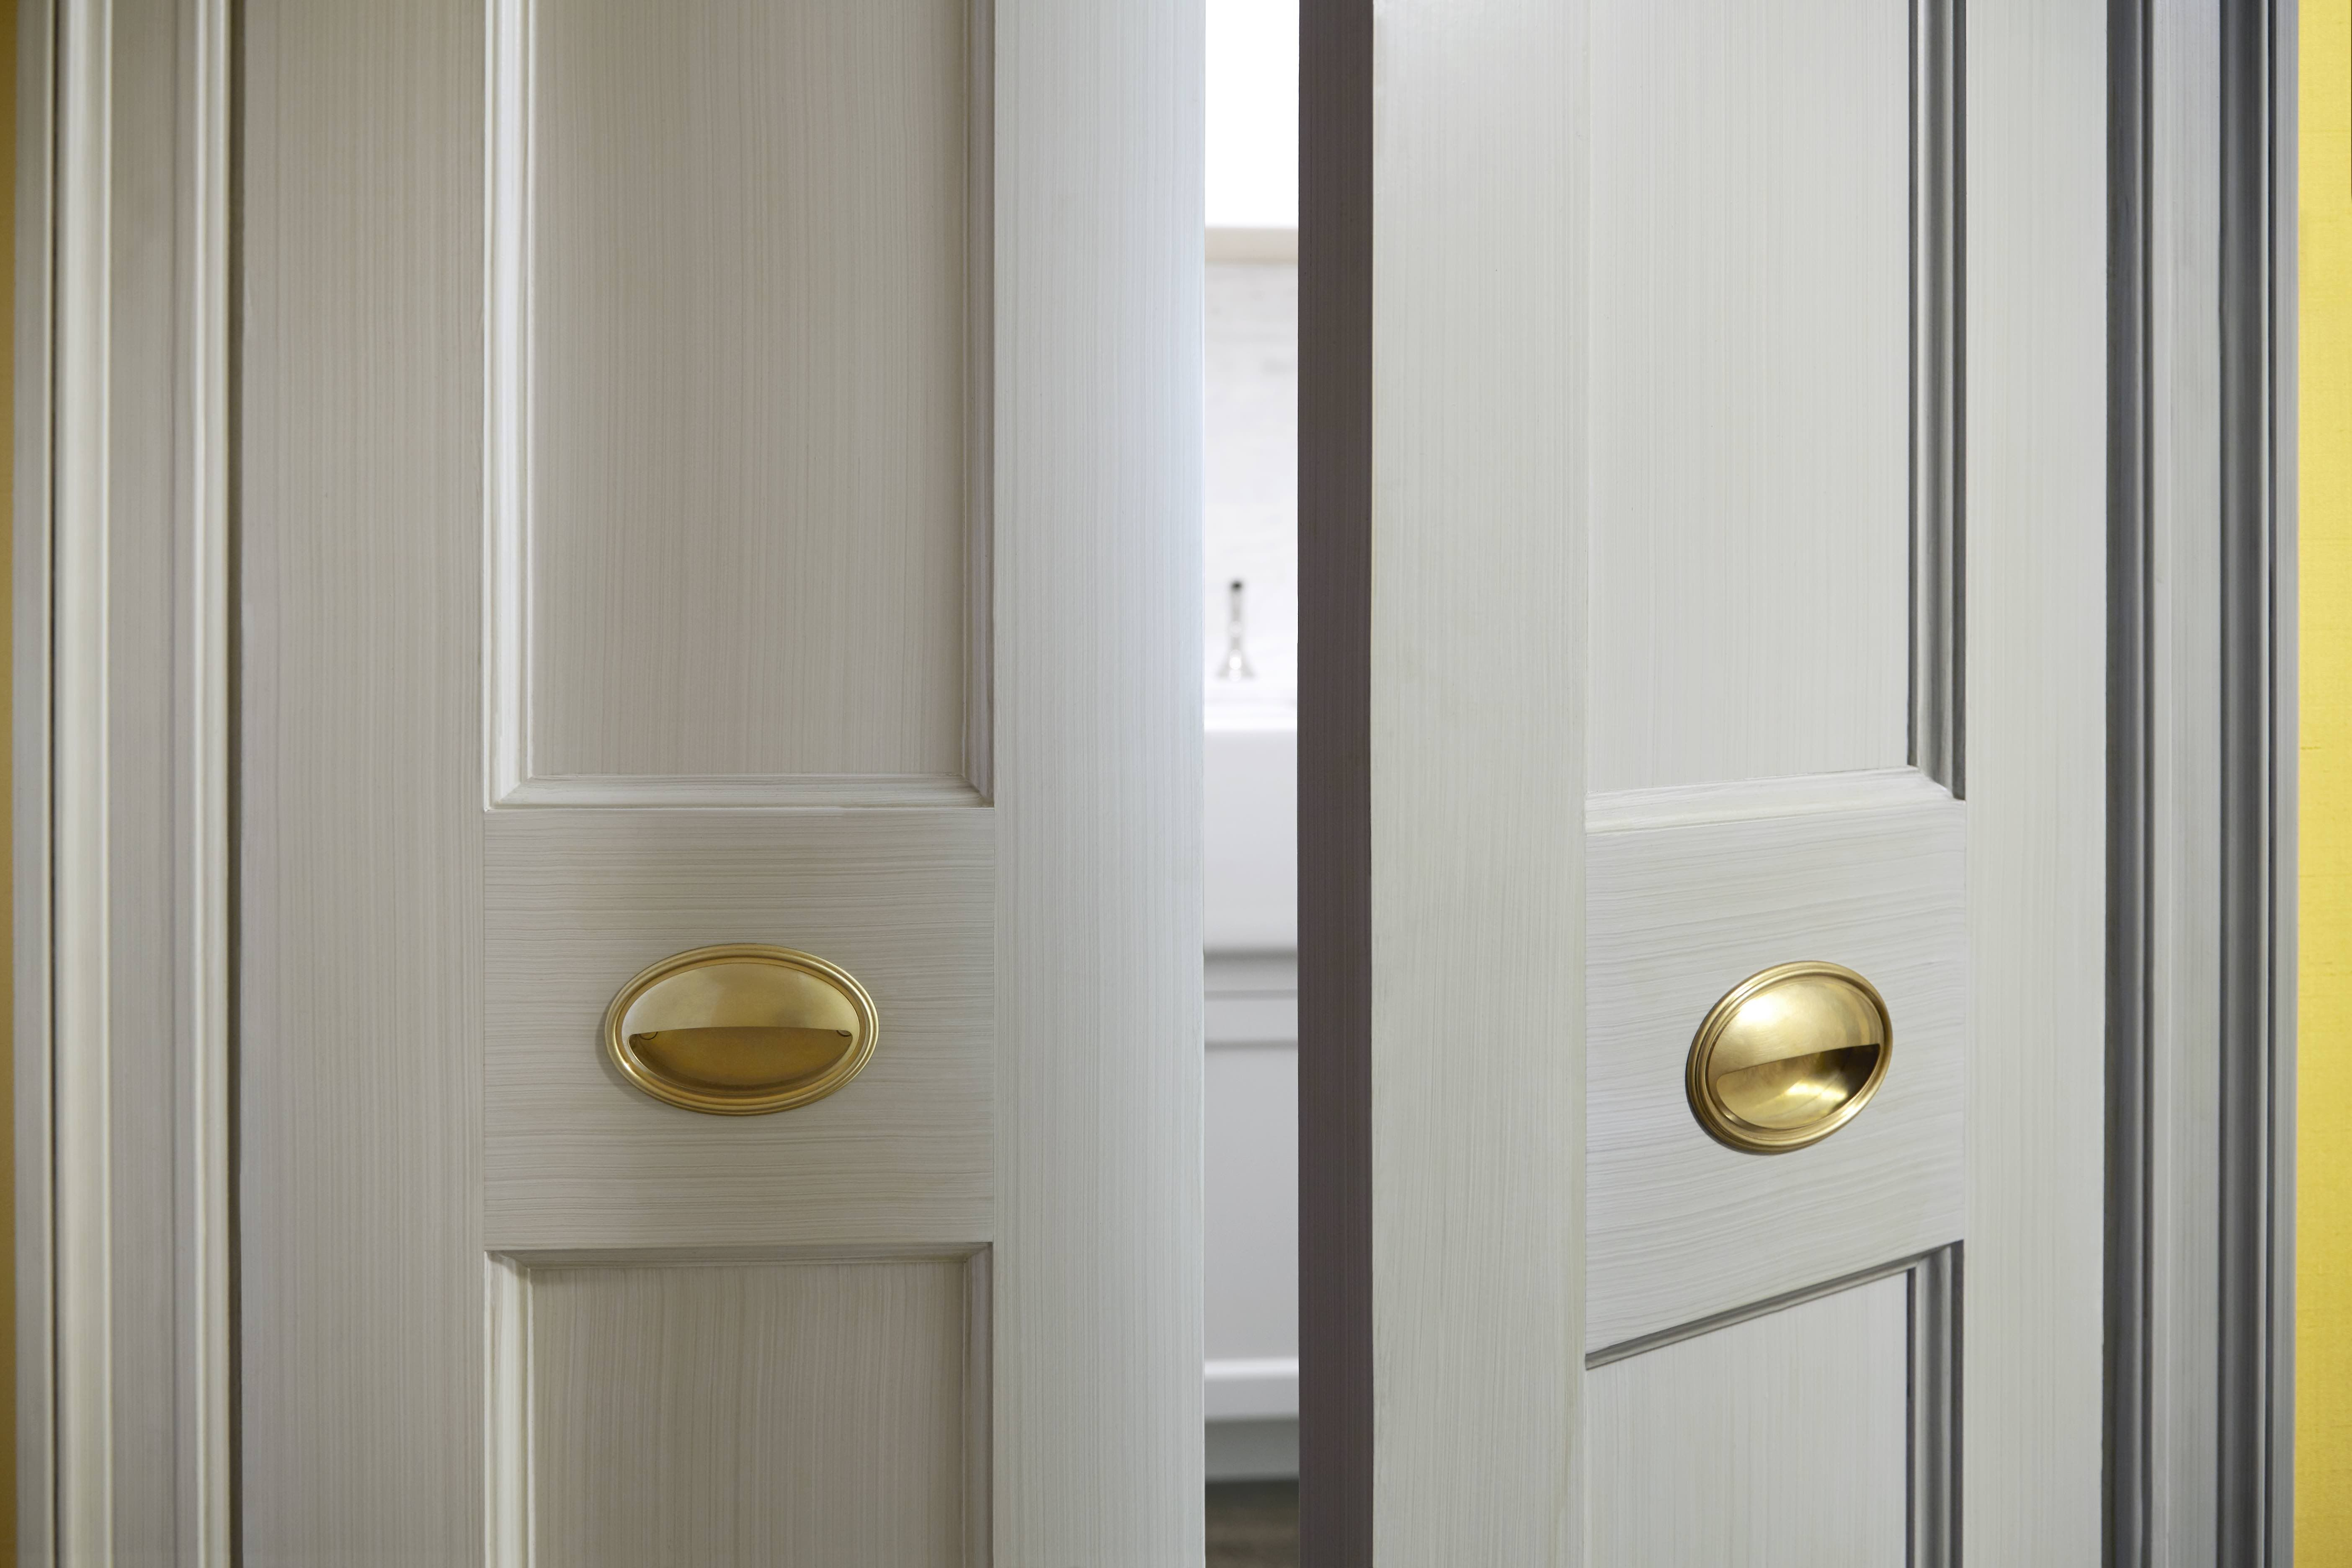 Burnished Brass Recessed Clamshell Door Pulls Lowes Hardware Hardware Residences